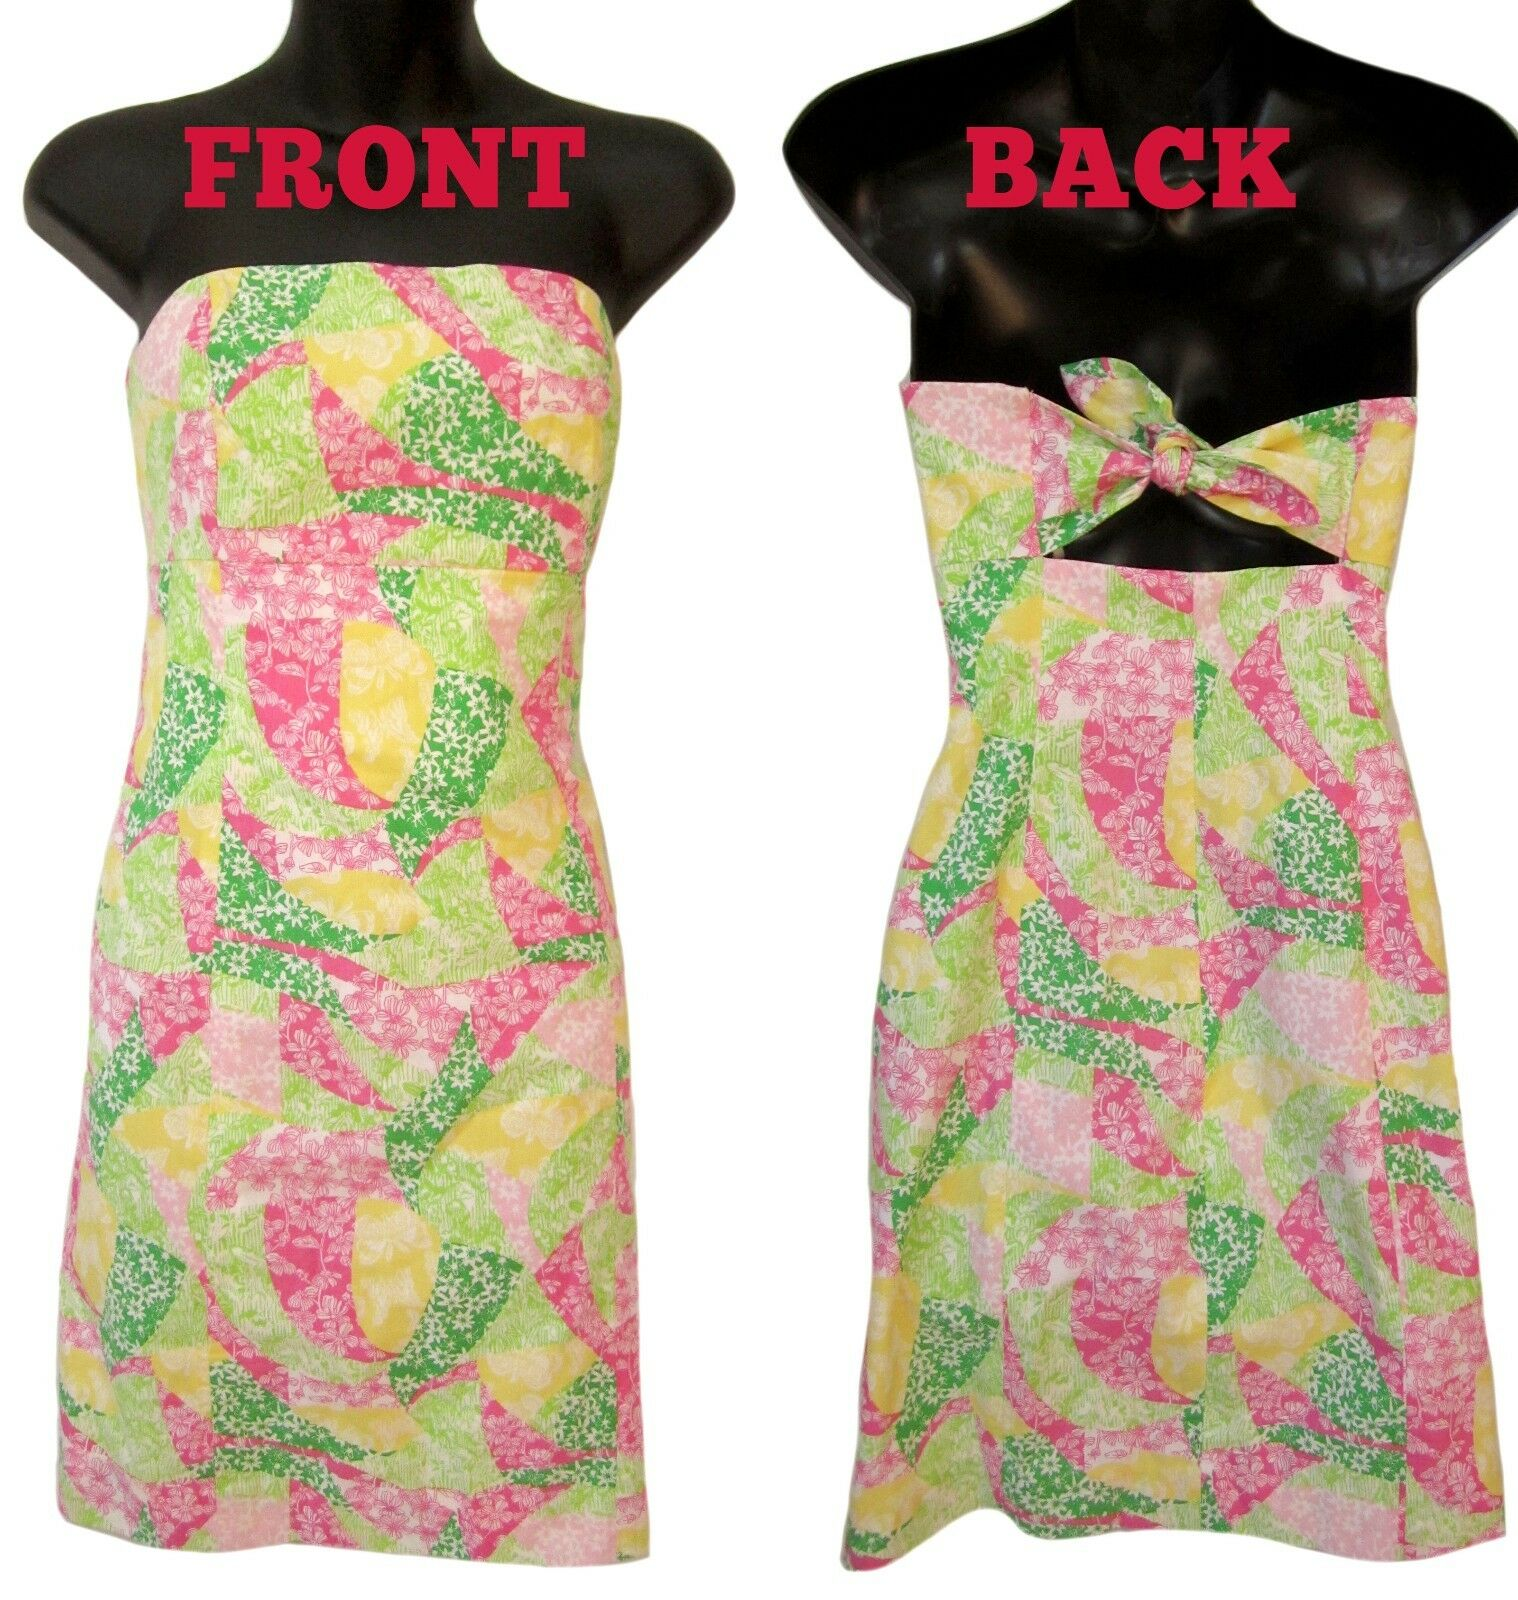 LILLY PULITZER 100% COTTON Strapless Dress, size 6